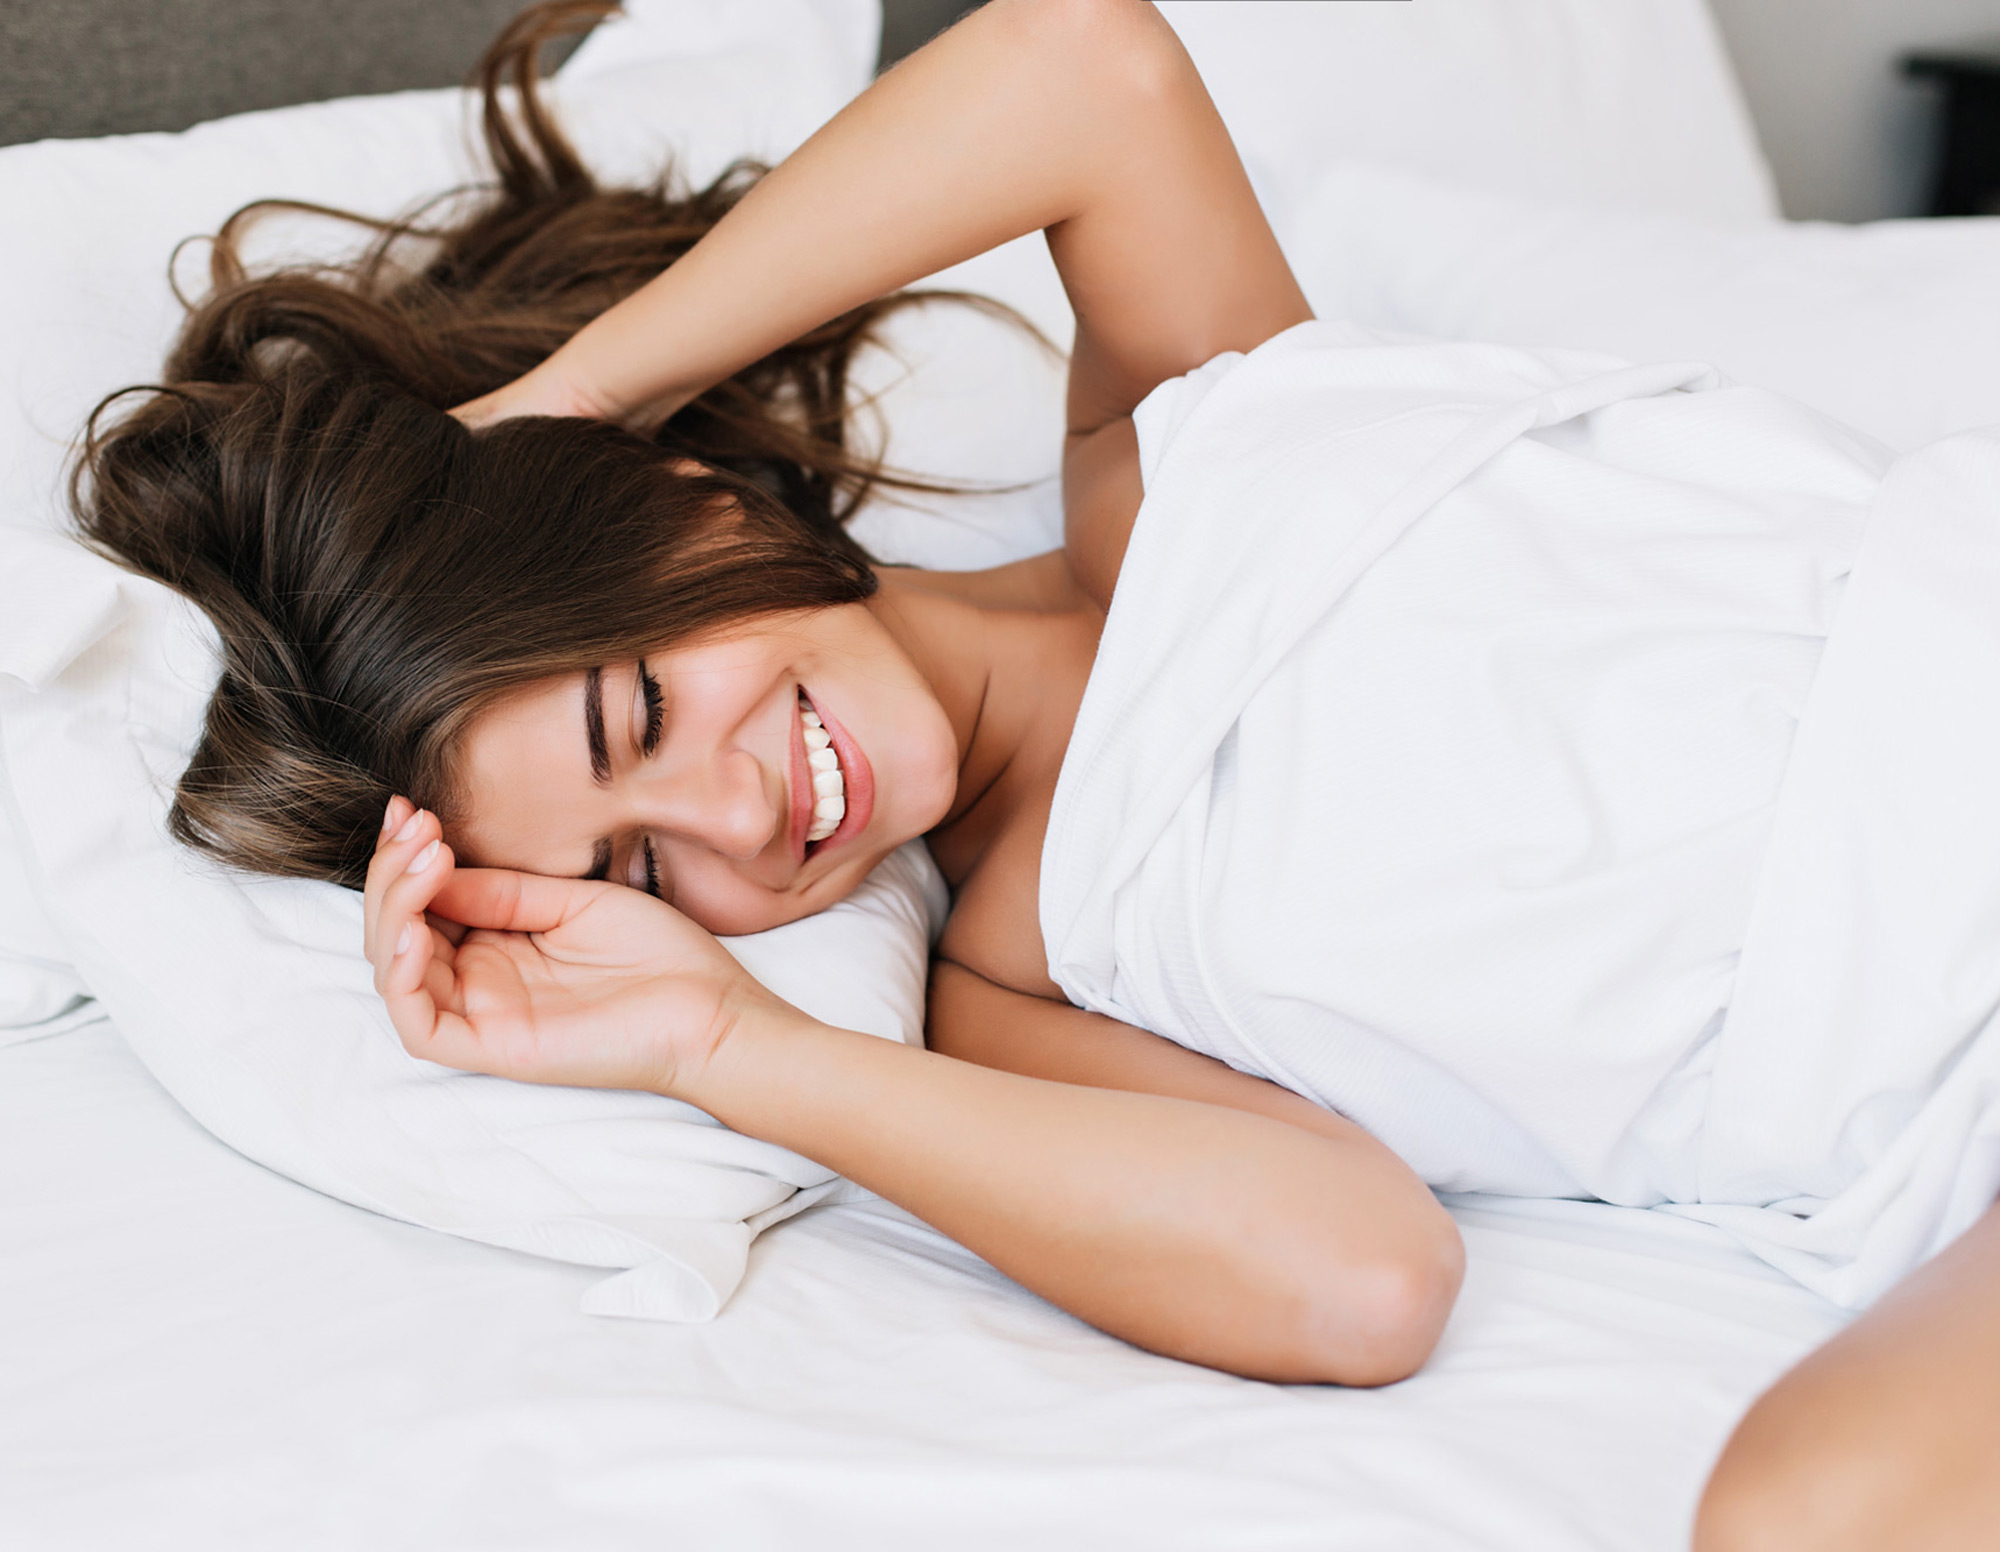 A woman confident and happy in bed